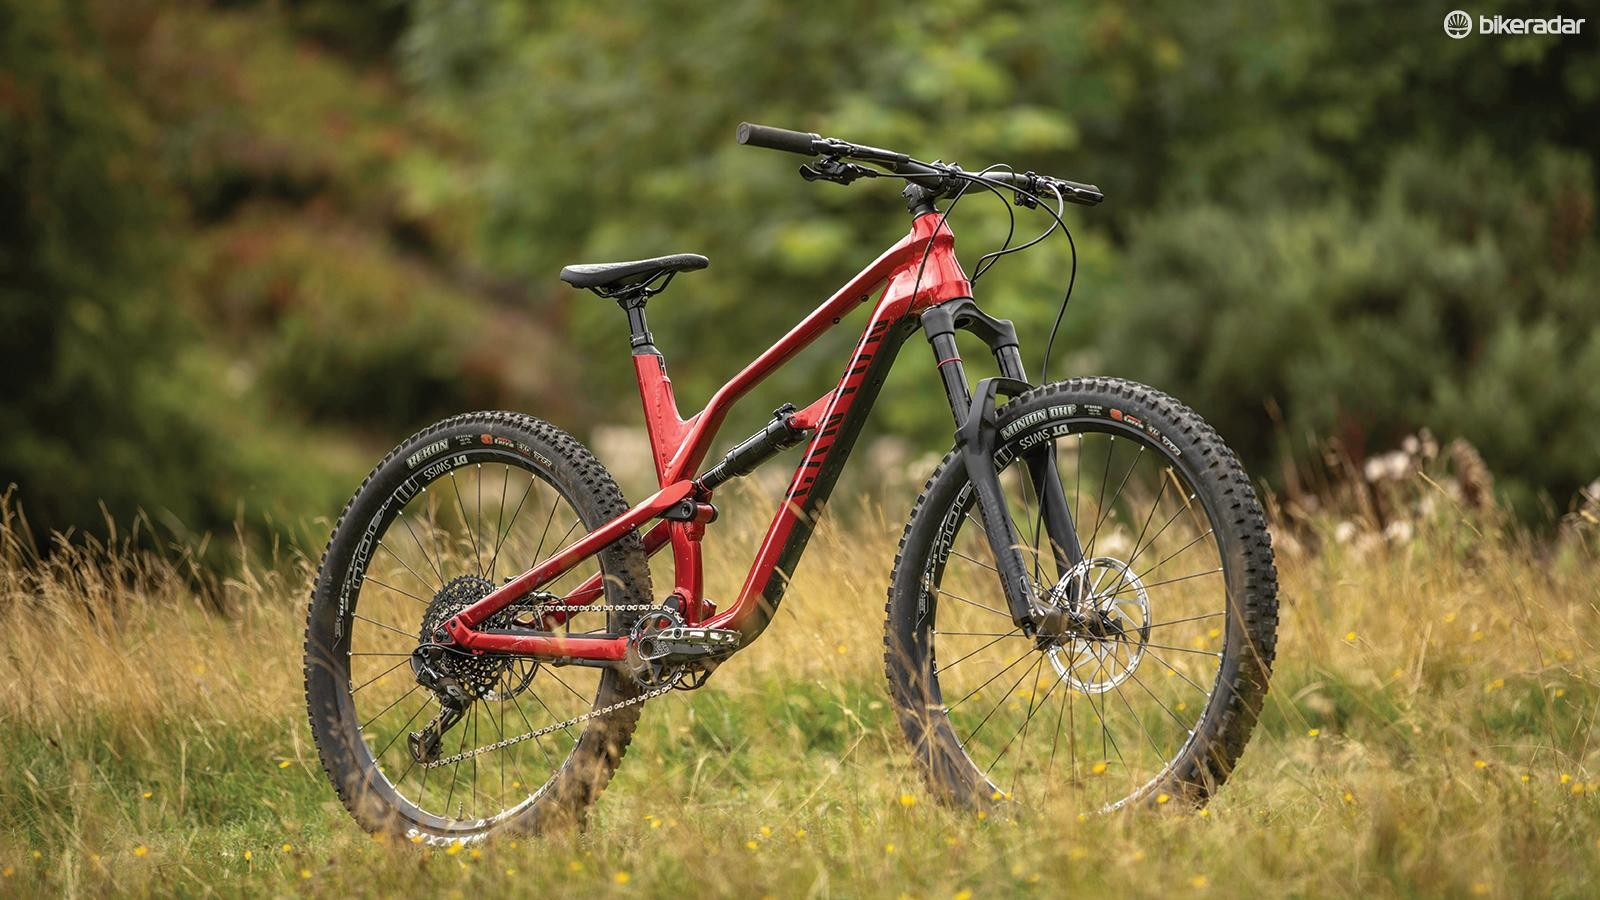 Canyon's Spectral has been the direct-sell all-rounder benchmark for years